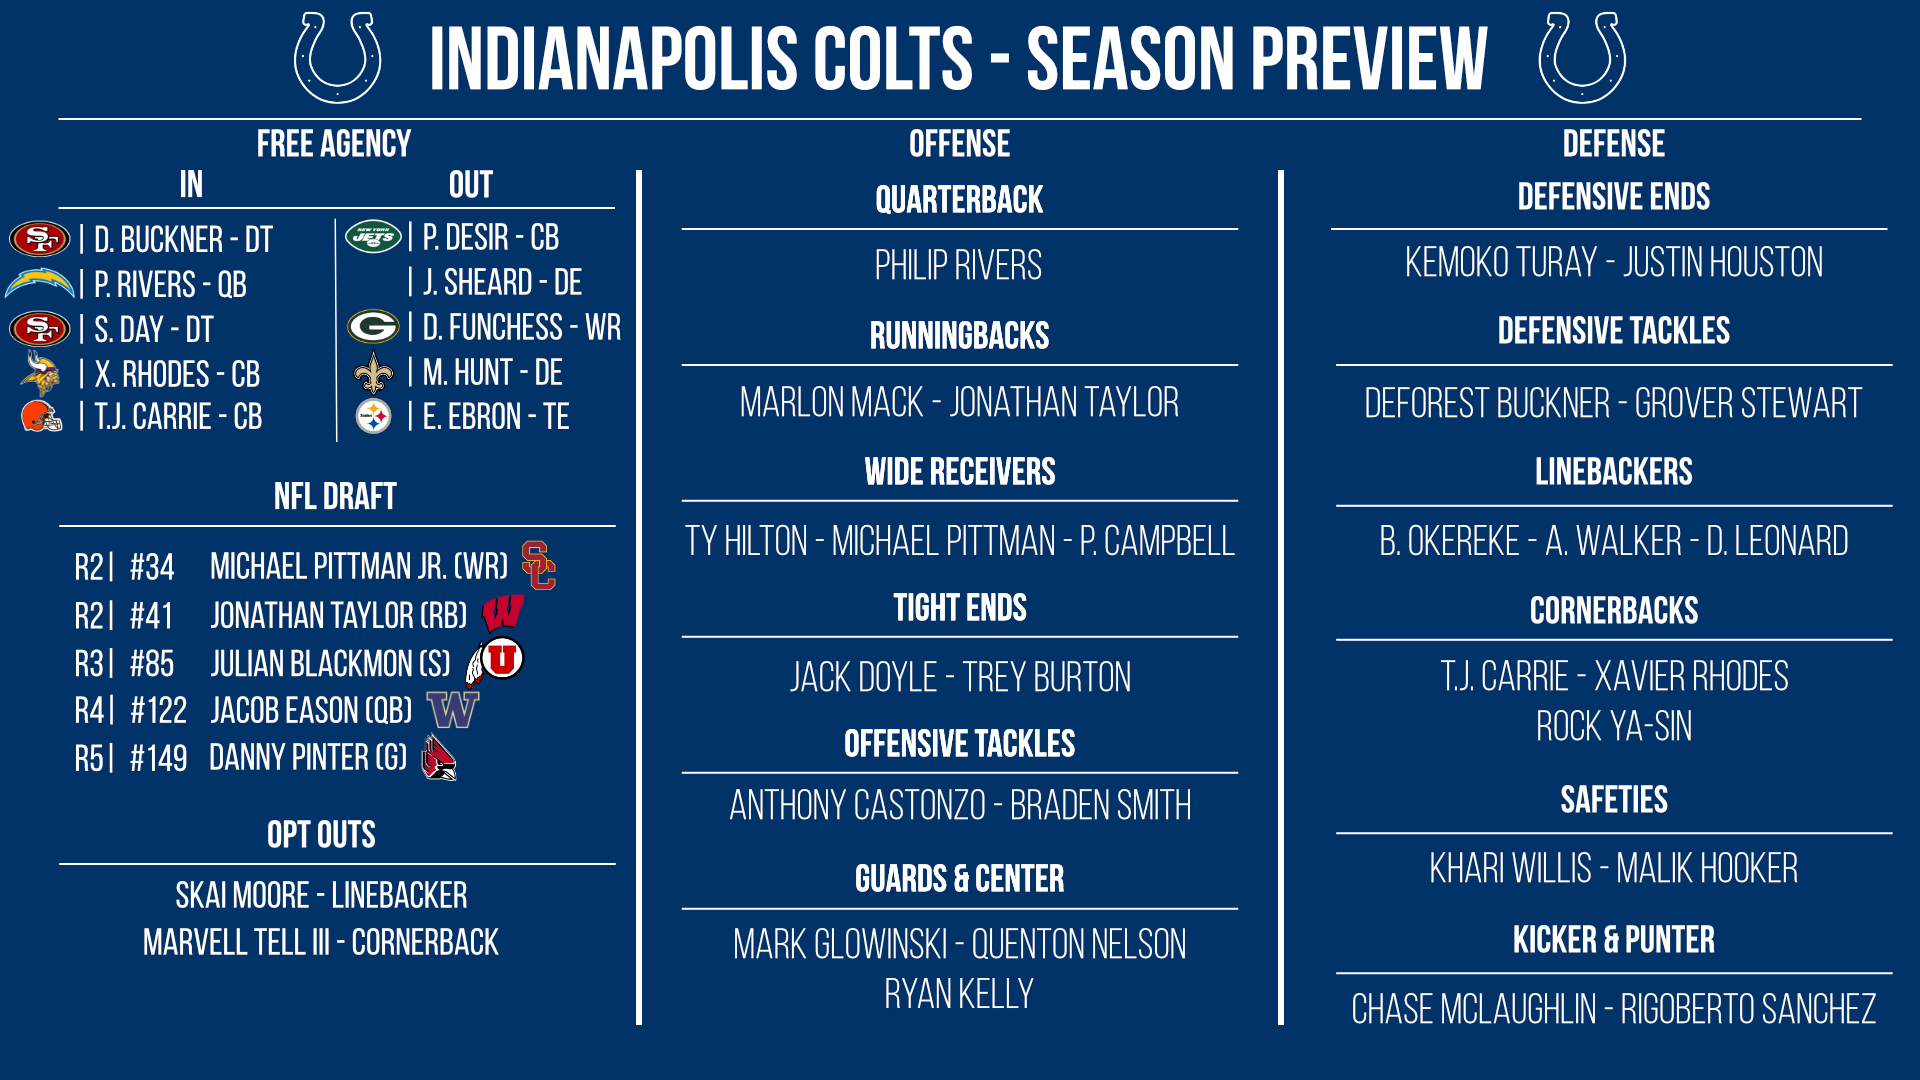 Indianapolis Colts preview